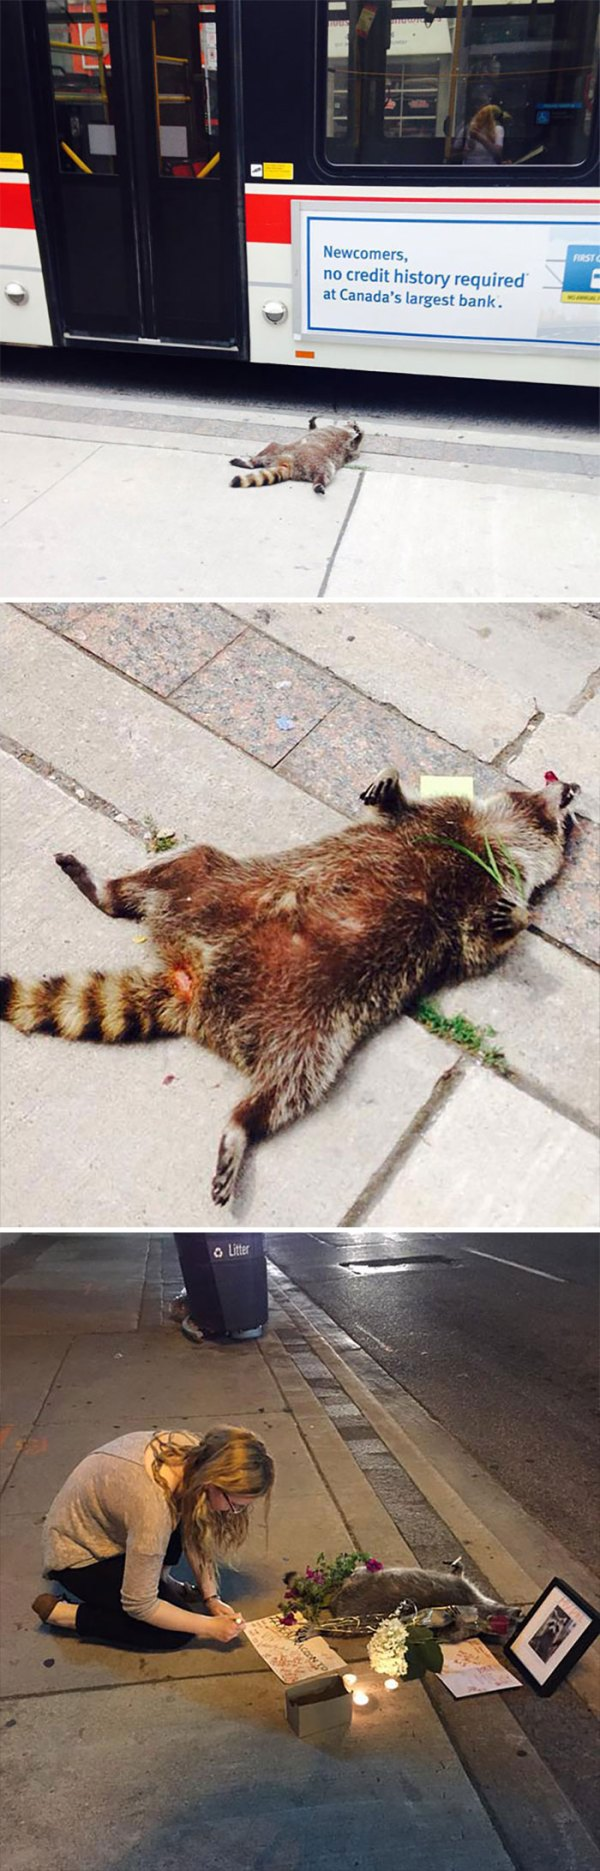 People In Toronto Made Memorial For Dead Raccoon After City Forgot To Pick It Up For 12 Hrs